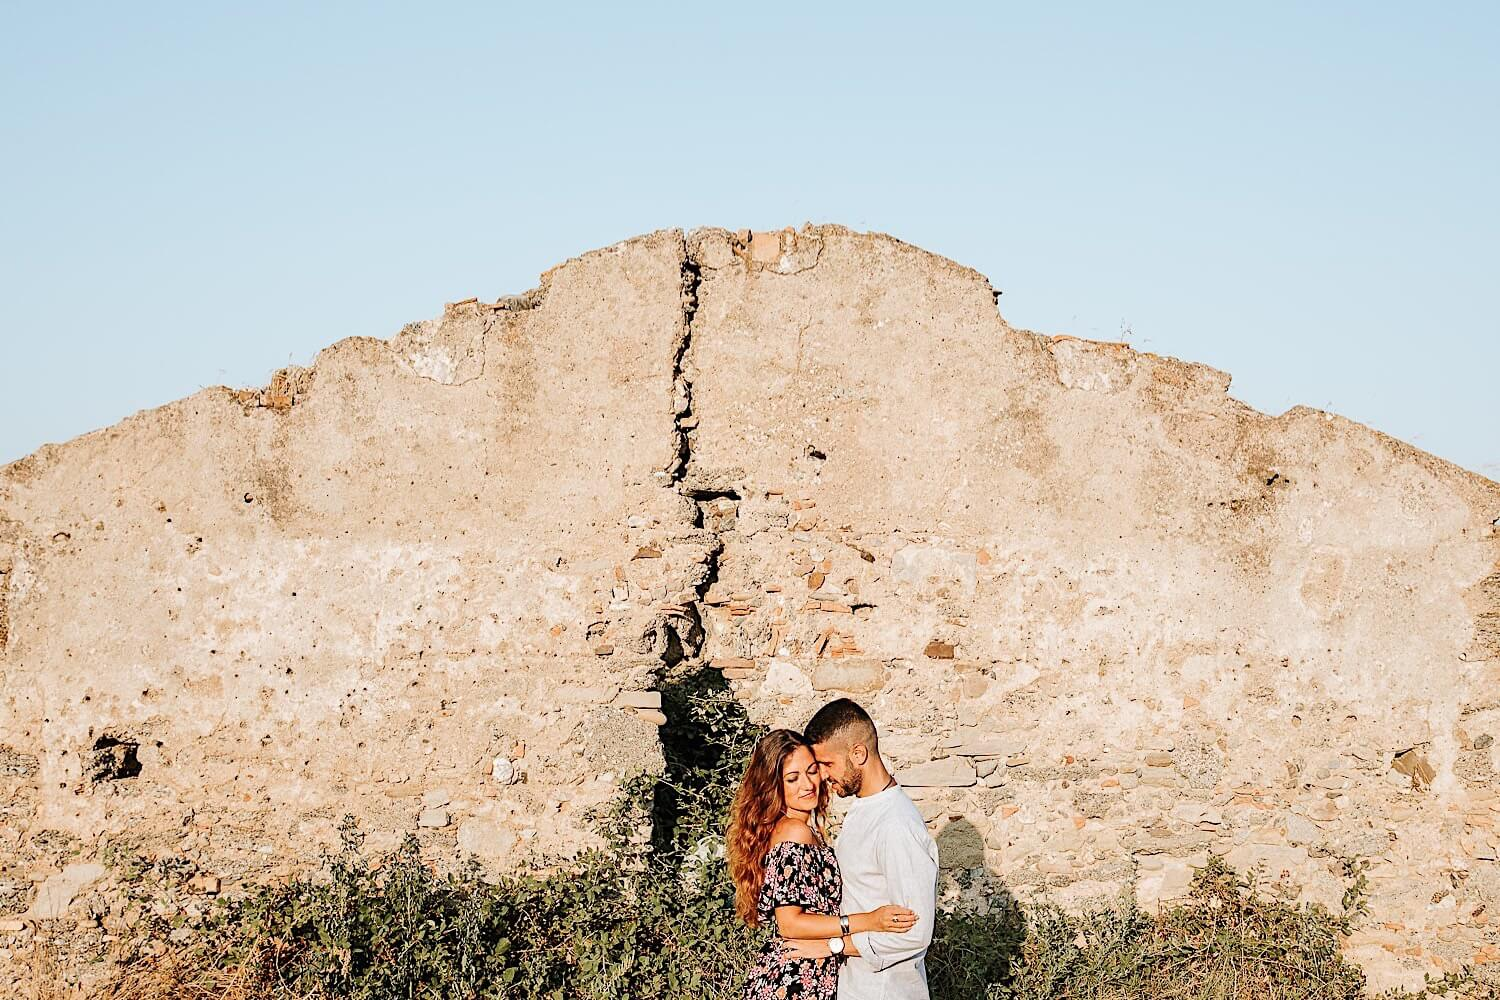 engagement session puglia, wedding beach puglia, wedding masseria grieco, wedding photographer puglia, wedding photography puglia, masseria wedding, hochzeitsfotograf apulia, hochzeitsfotograf gallipoli, wedding photographer apulia, reportage matrimonio puglia